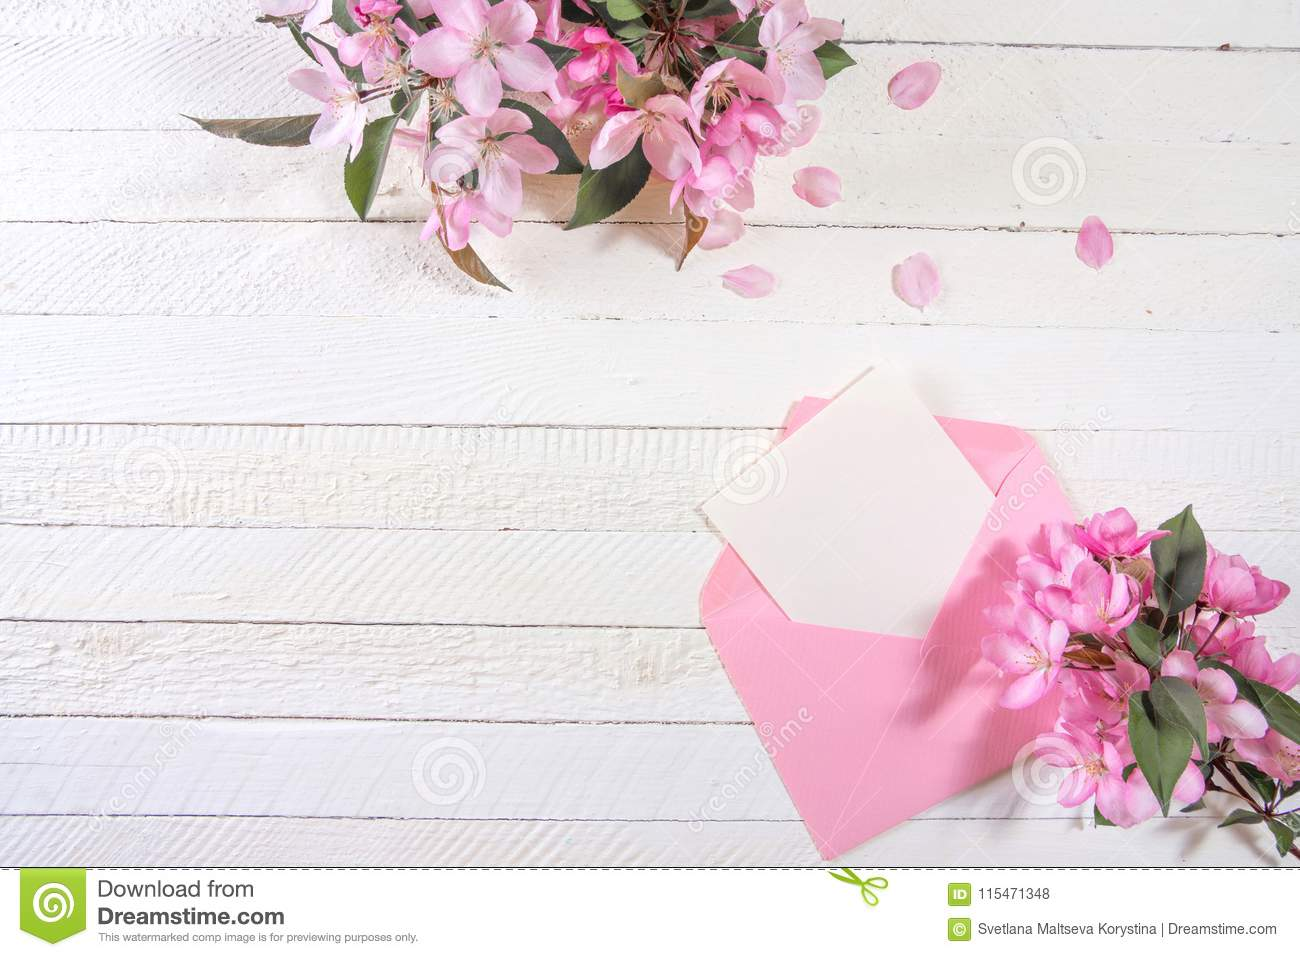 Сard with an pink envelope and pink flowers of apple tree on wooden board.